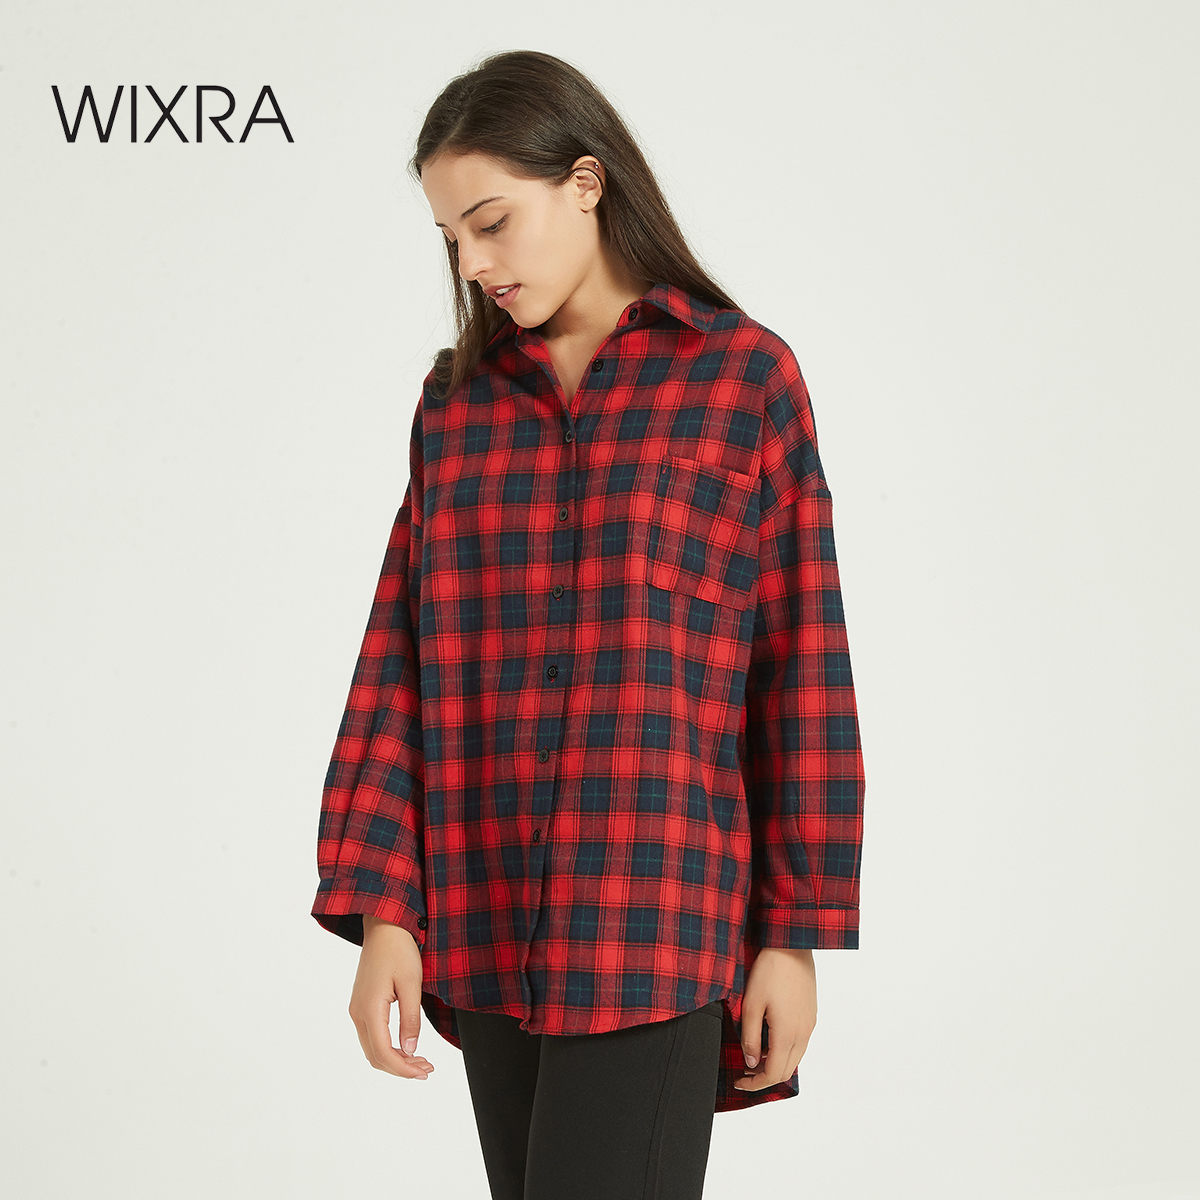 Wixra New Classic Casual Lapel Blouses Women Plaid Shirt Loose Checks Shirts Female Long Sleeve Tops Blouse Spring Autumn image